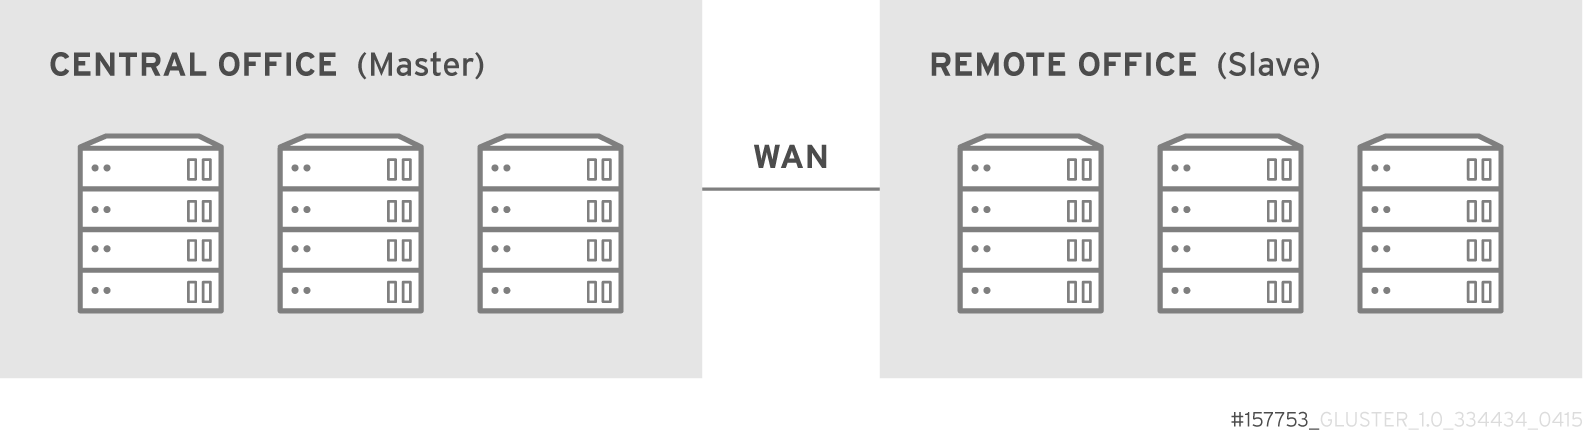 Geo-replication over WAN